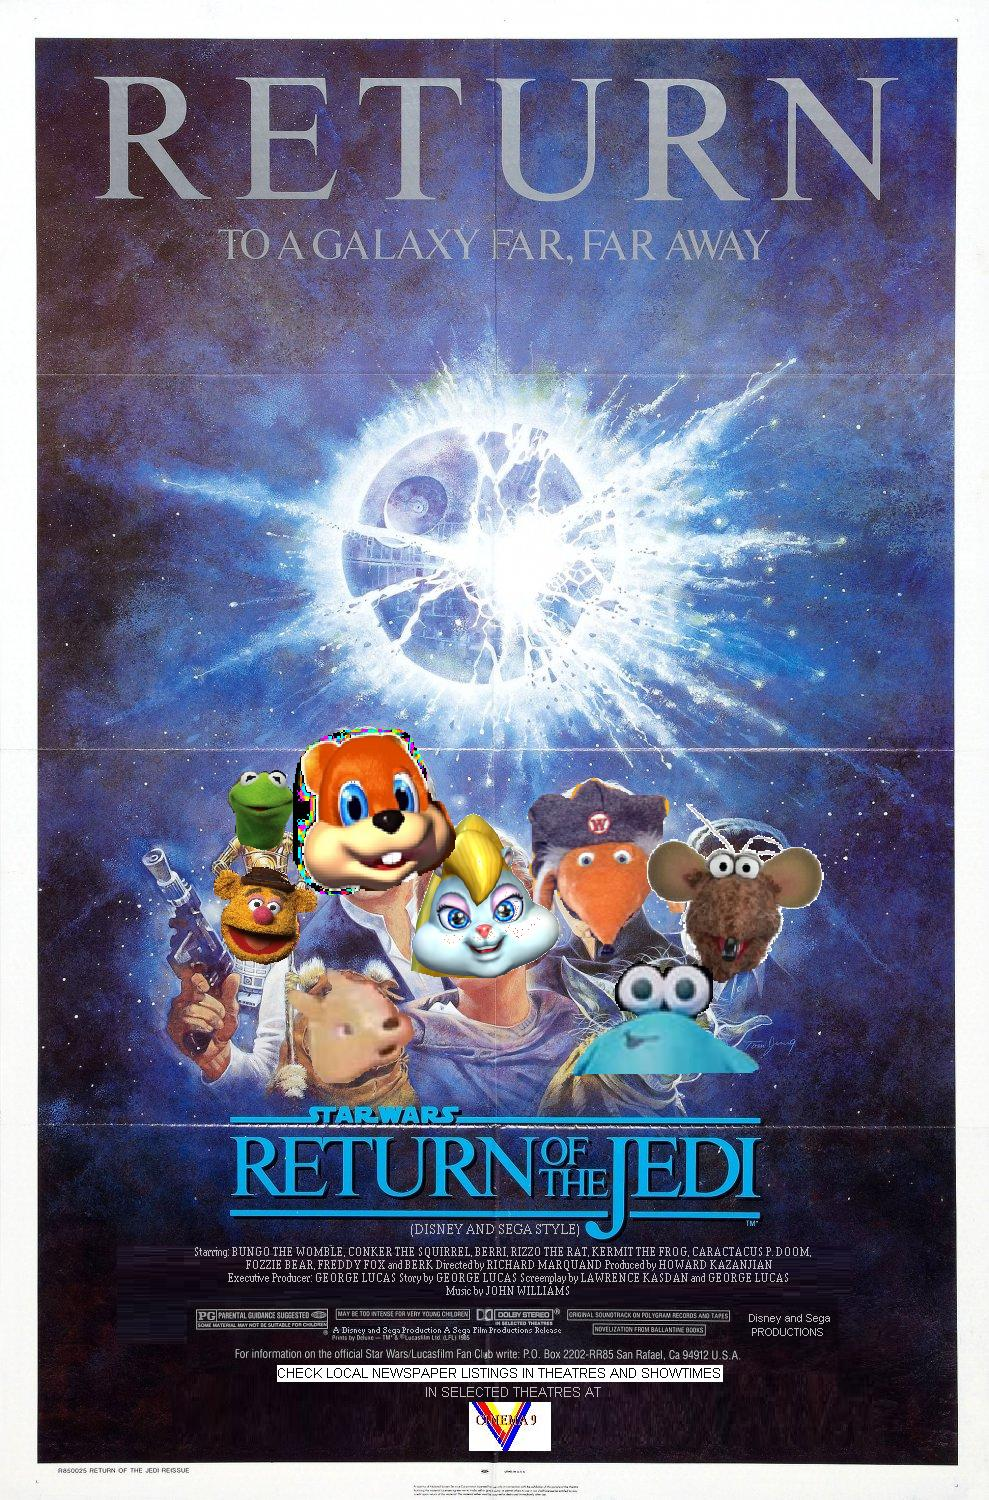 Star Wars Episode 6: Return of the Jedi (Disney and Sega Style)